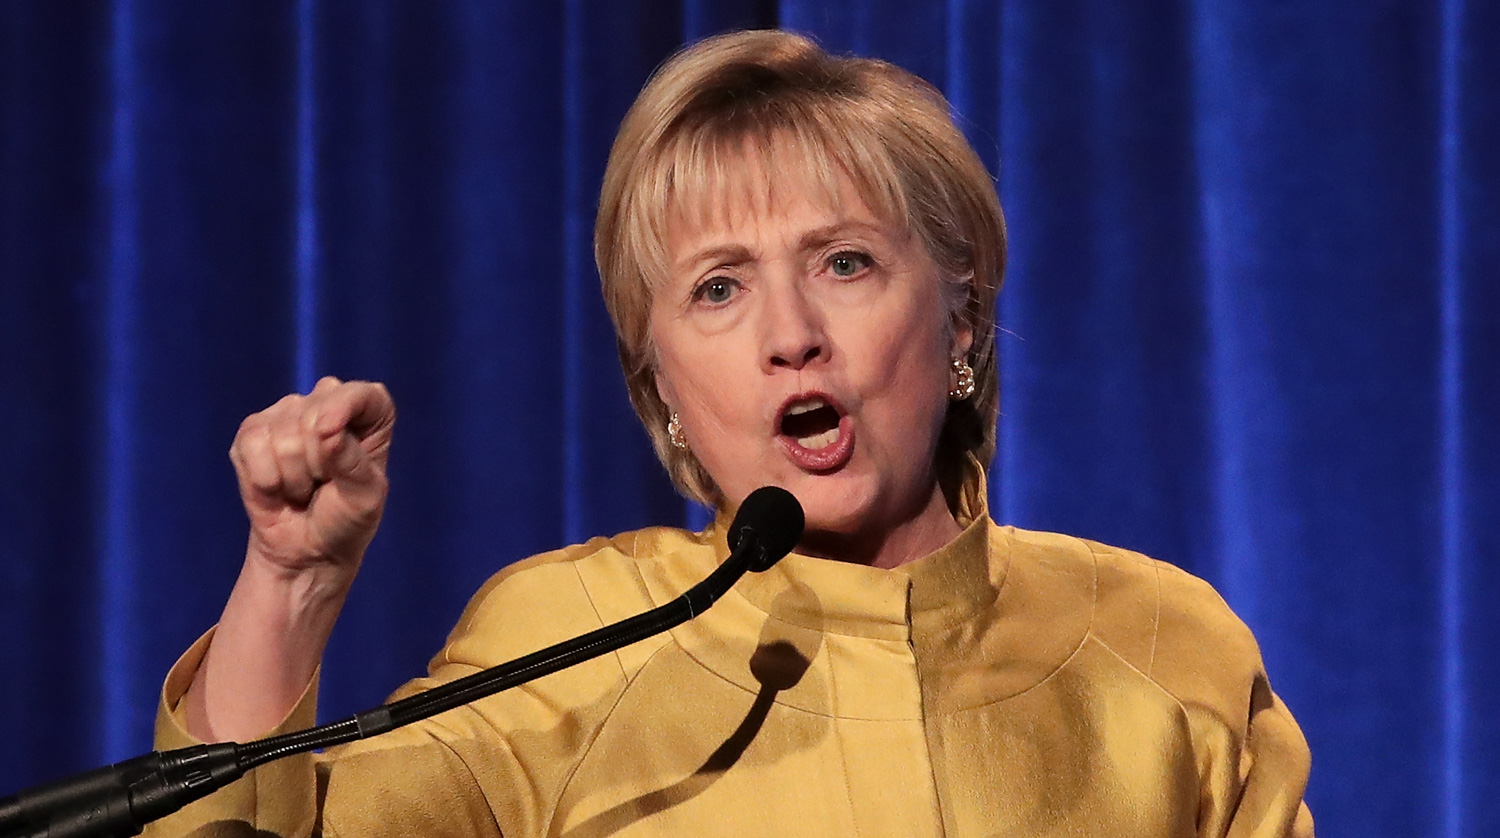 Hillary Clinton Condemns the 'White Supremacists in Our Streets'